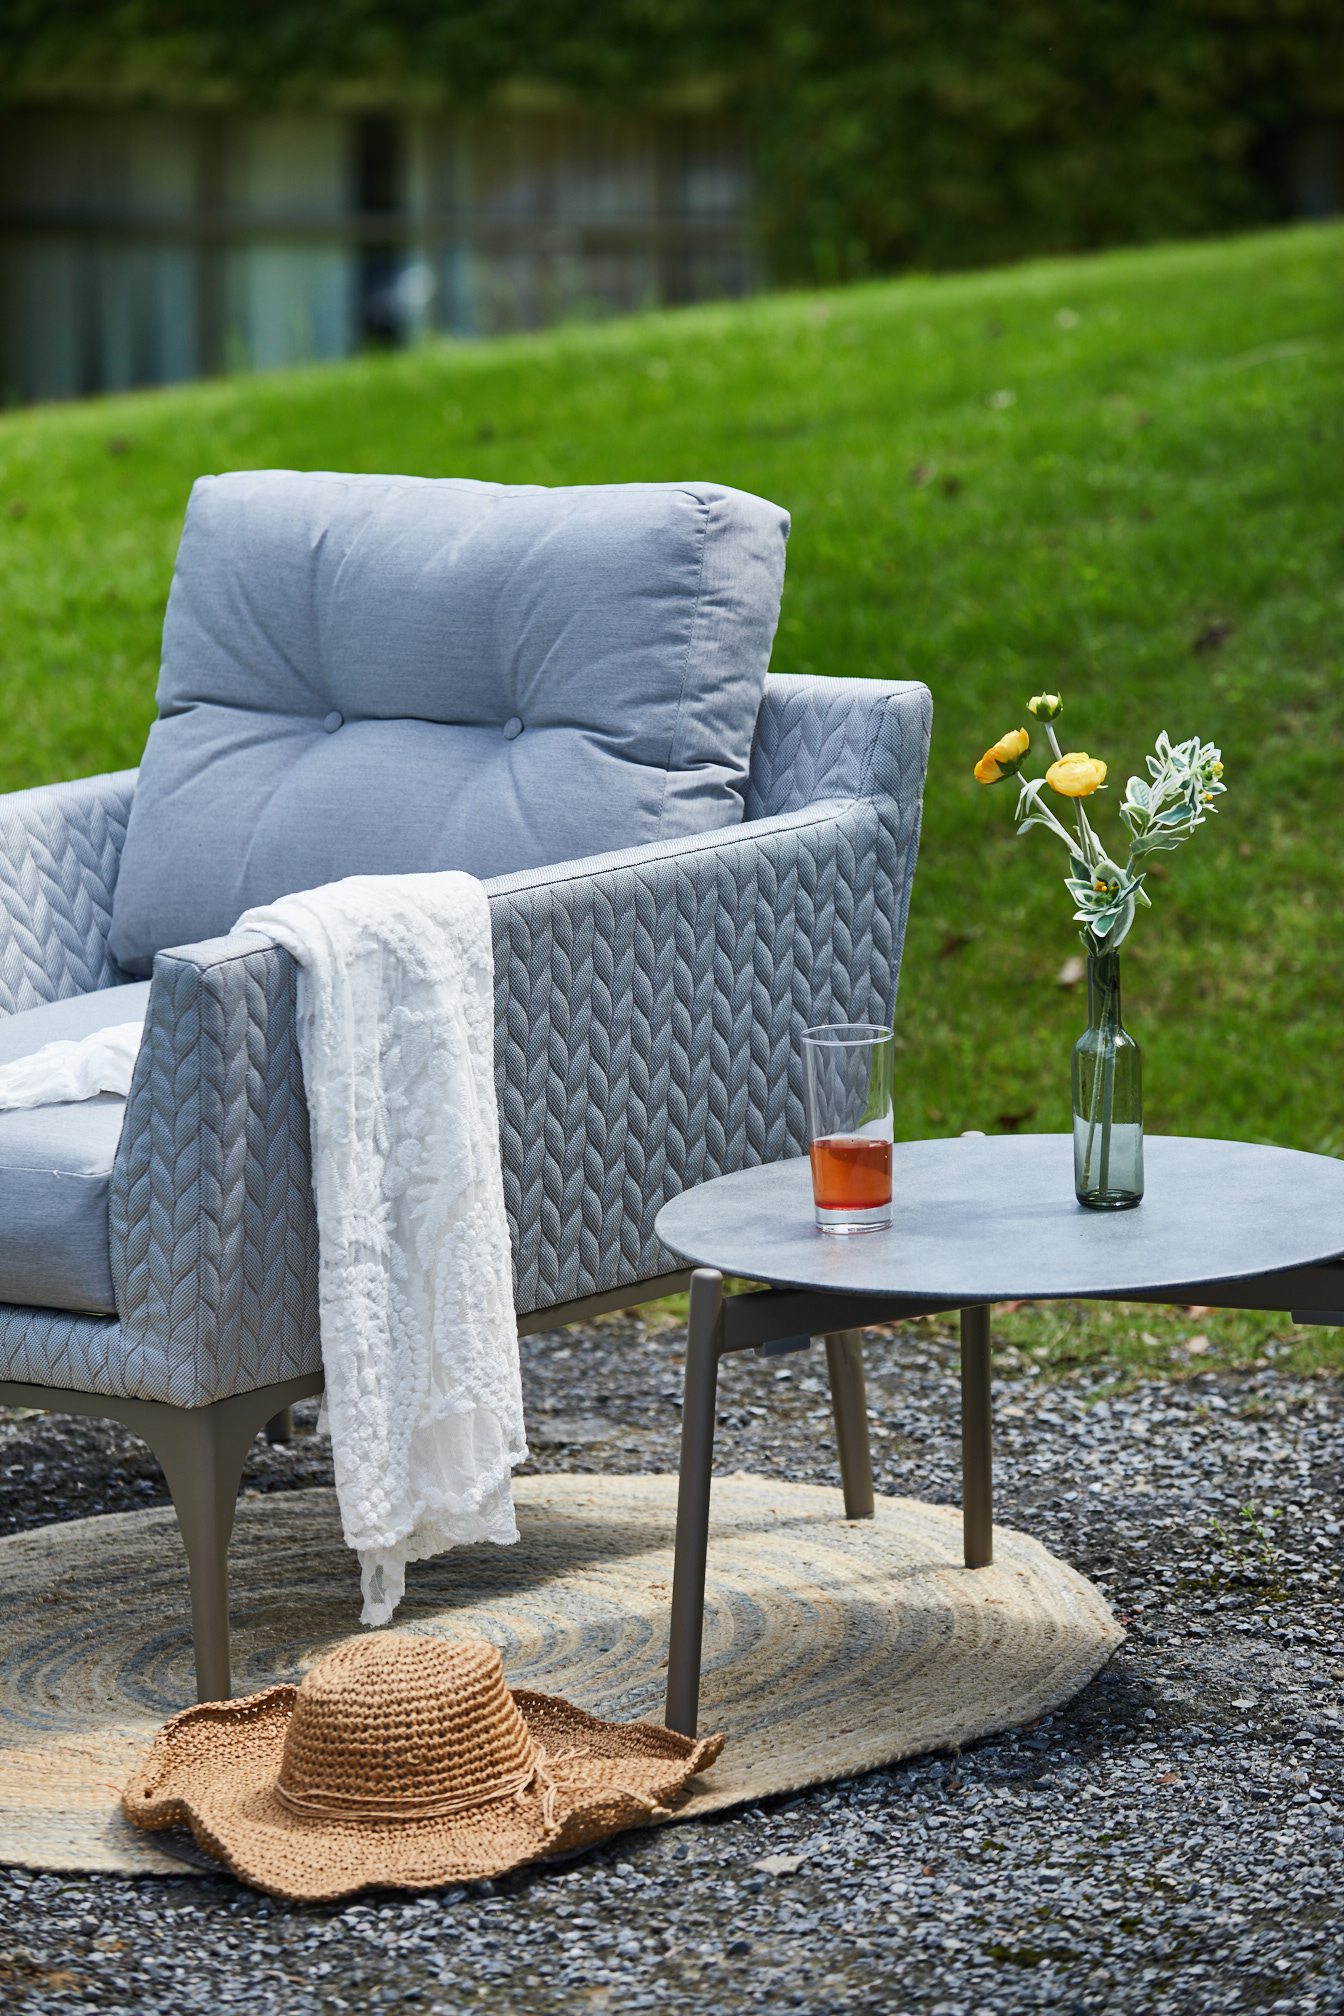 NEWS | Home Design Trends are Evolving for Social Distancing (Outdoor Space at Home)